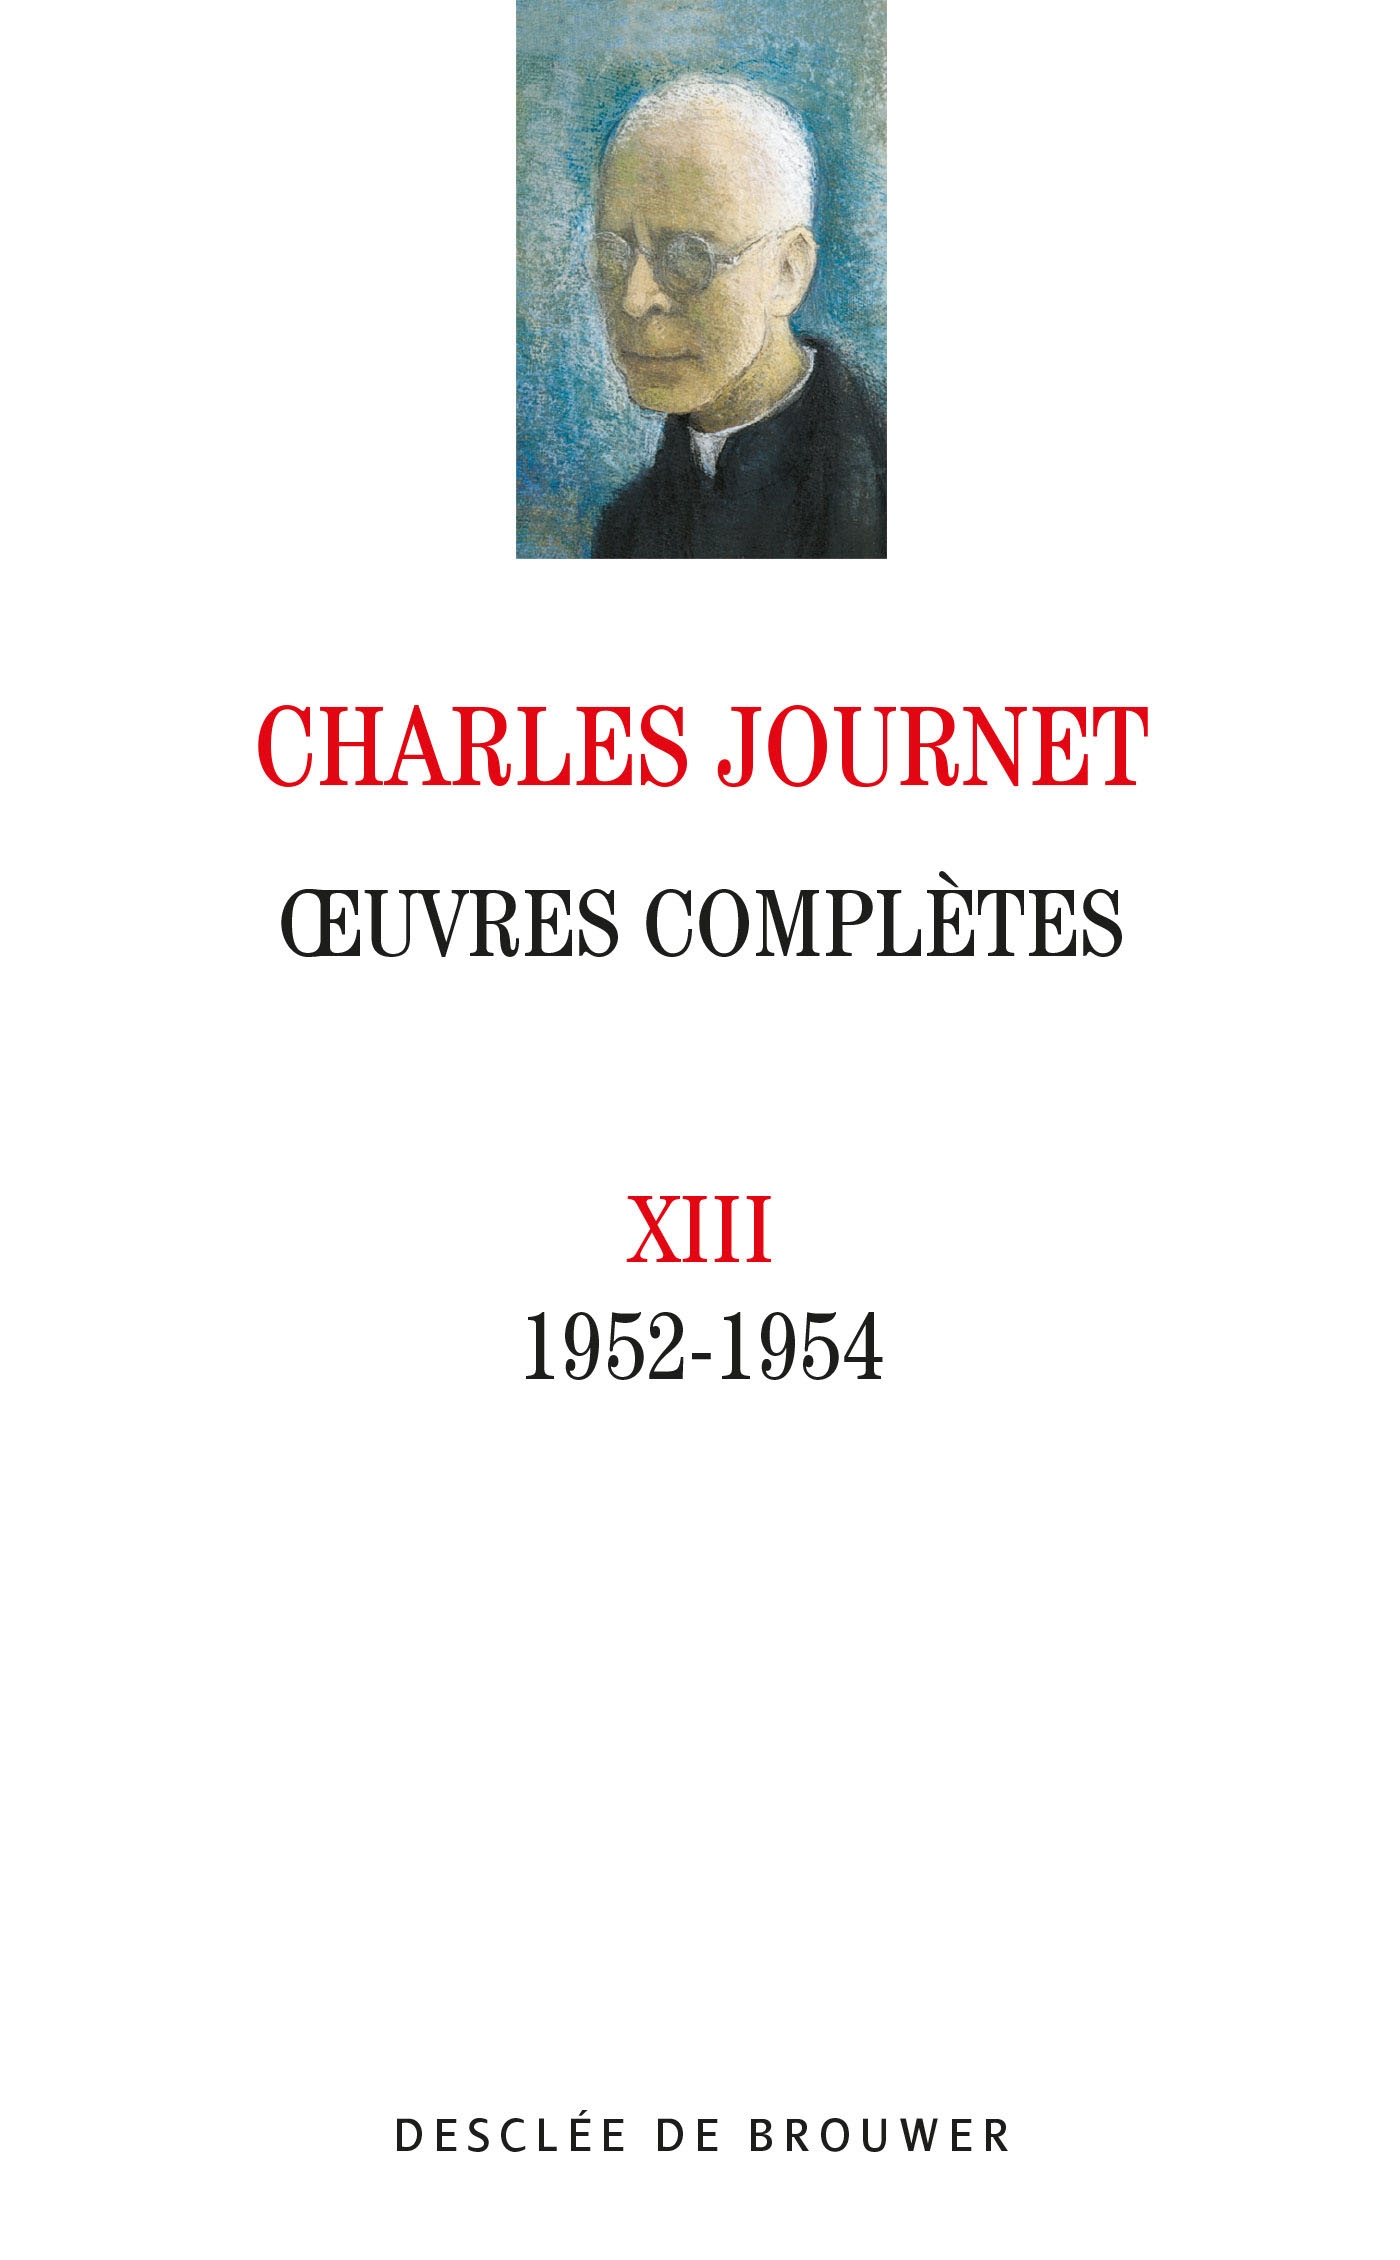 Oeuvres complètes volume XIII